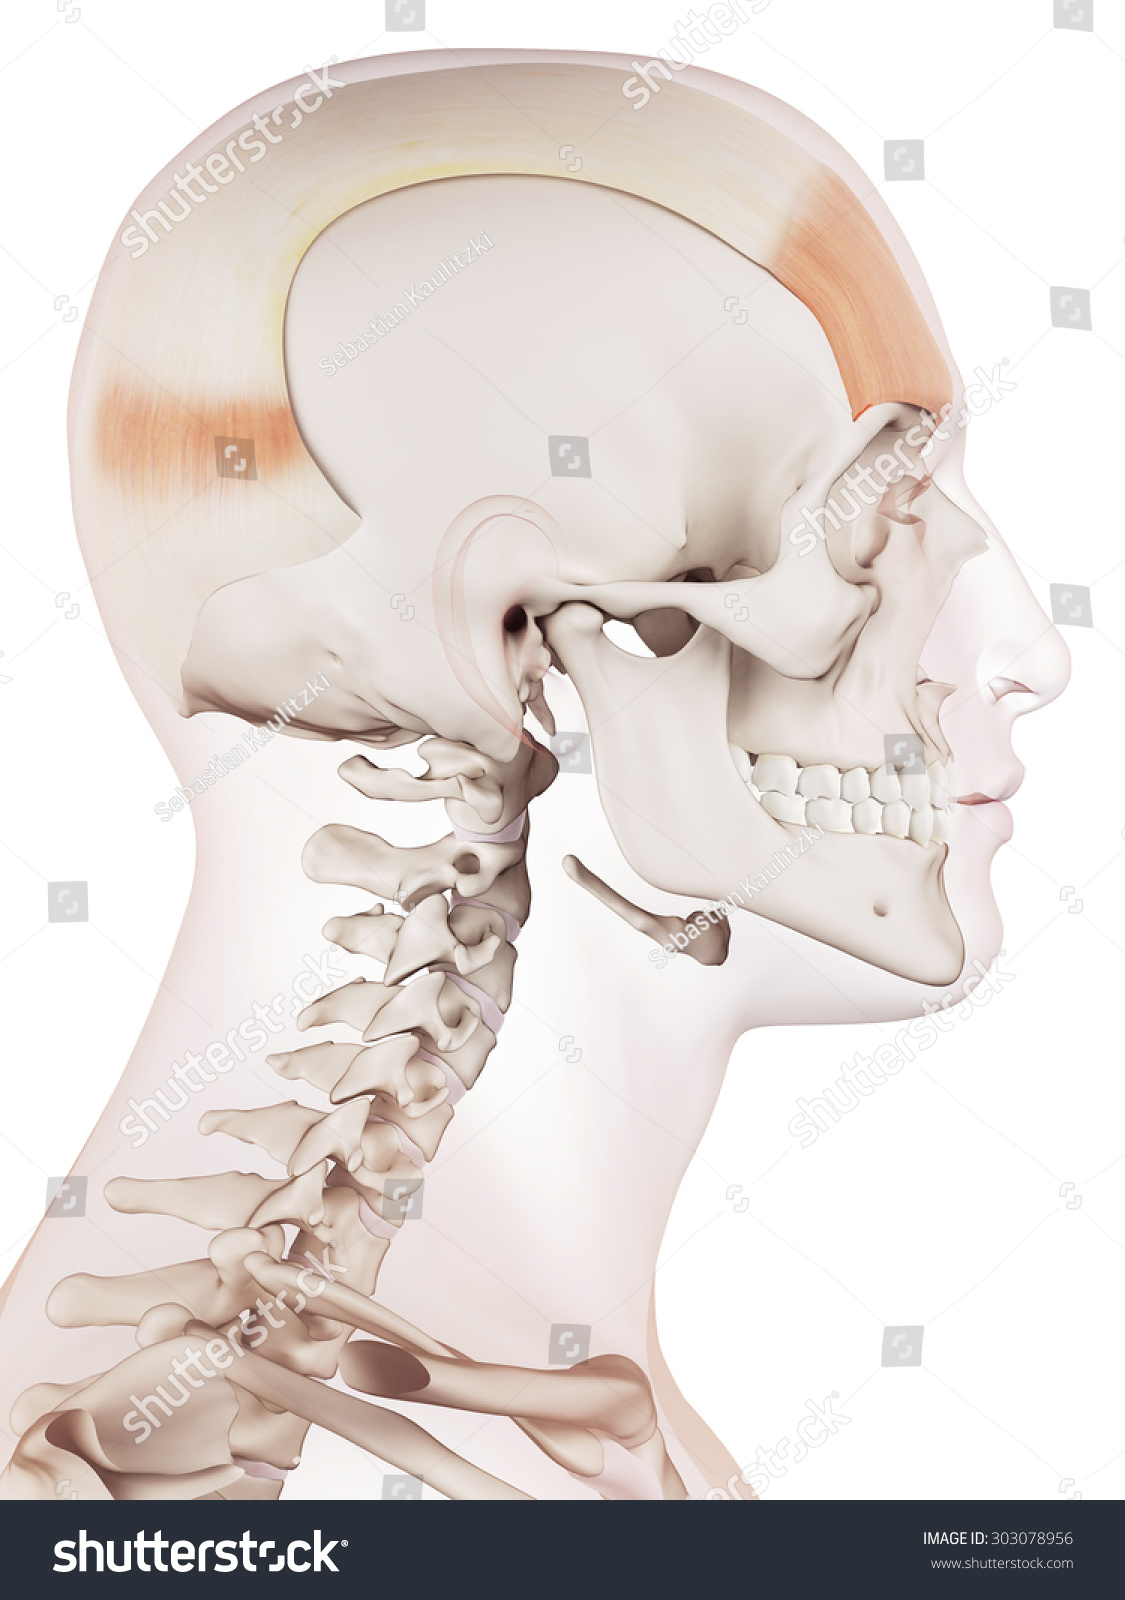 Medically Accurate Muscle Illustration Frontalis Stock Illustration